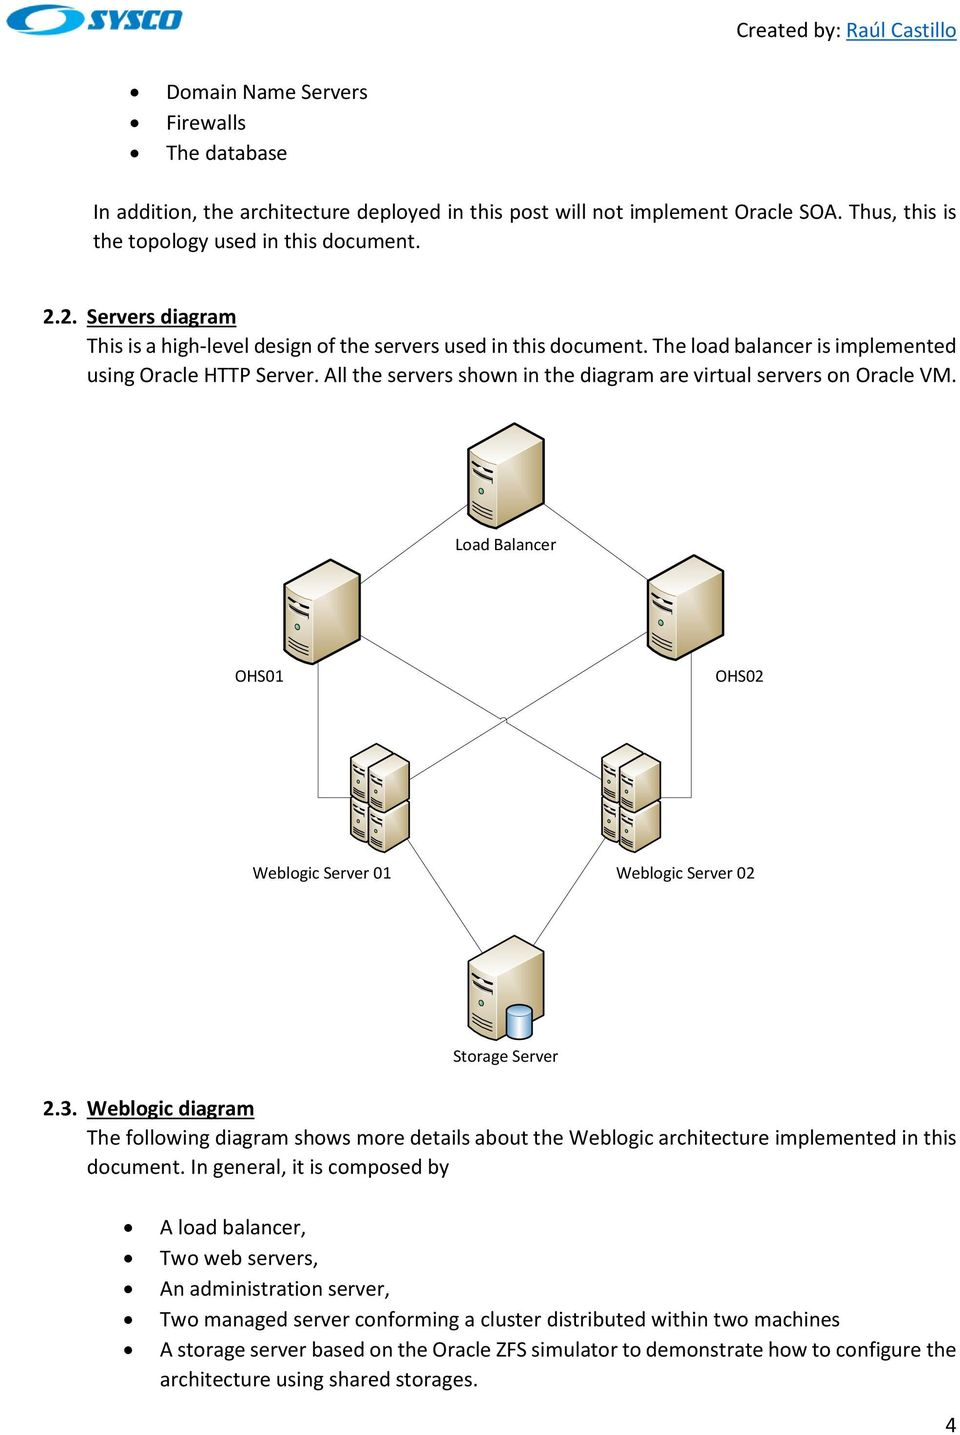 Implementing a Weblogic Architecture with High Availability